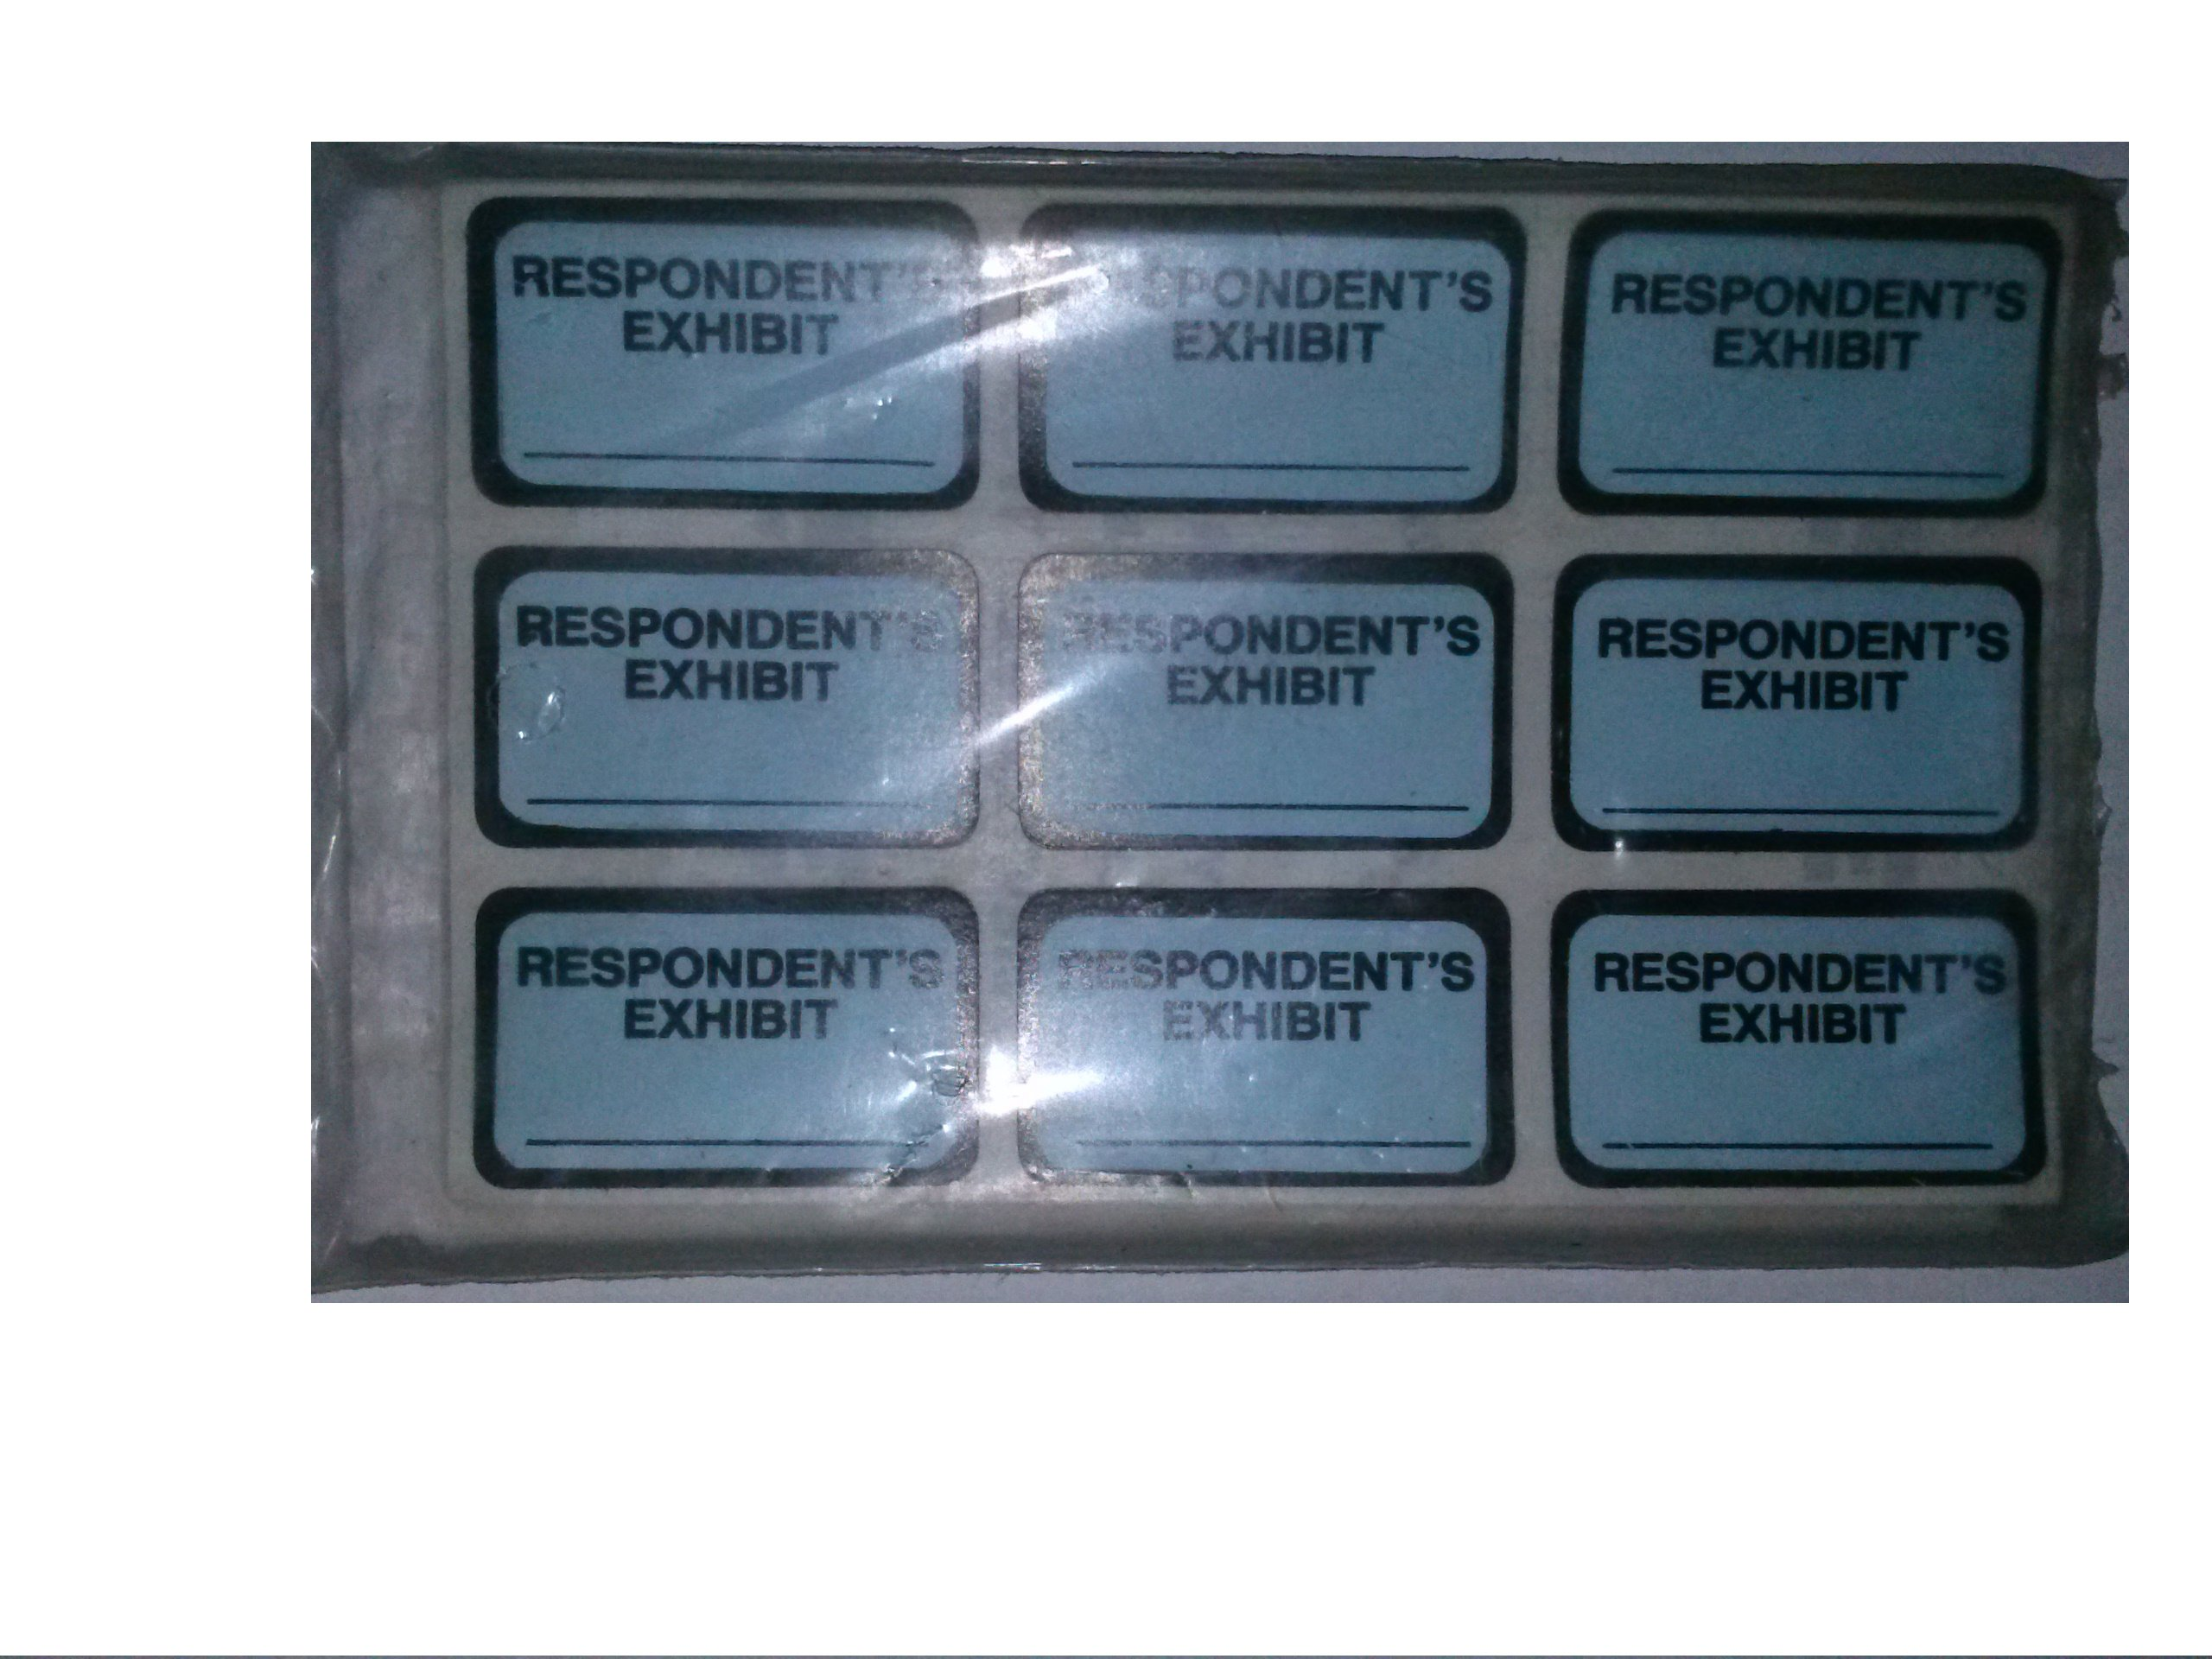 Tabbies 58027 Legal Exhibit Labels Respodent's Exhibit 252 Tabs Easy to Use Self Adhesive by Tabbies (Image #1)